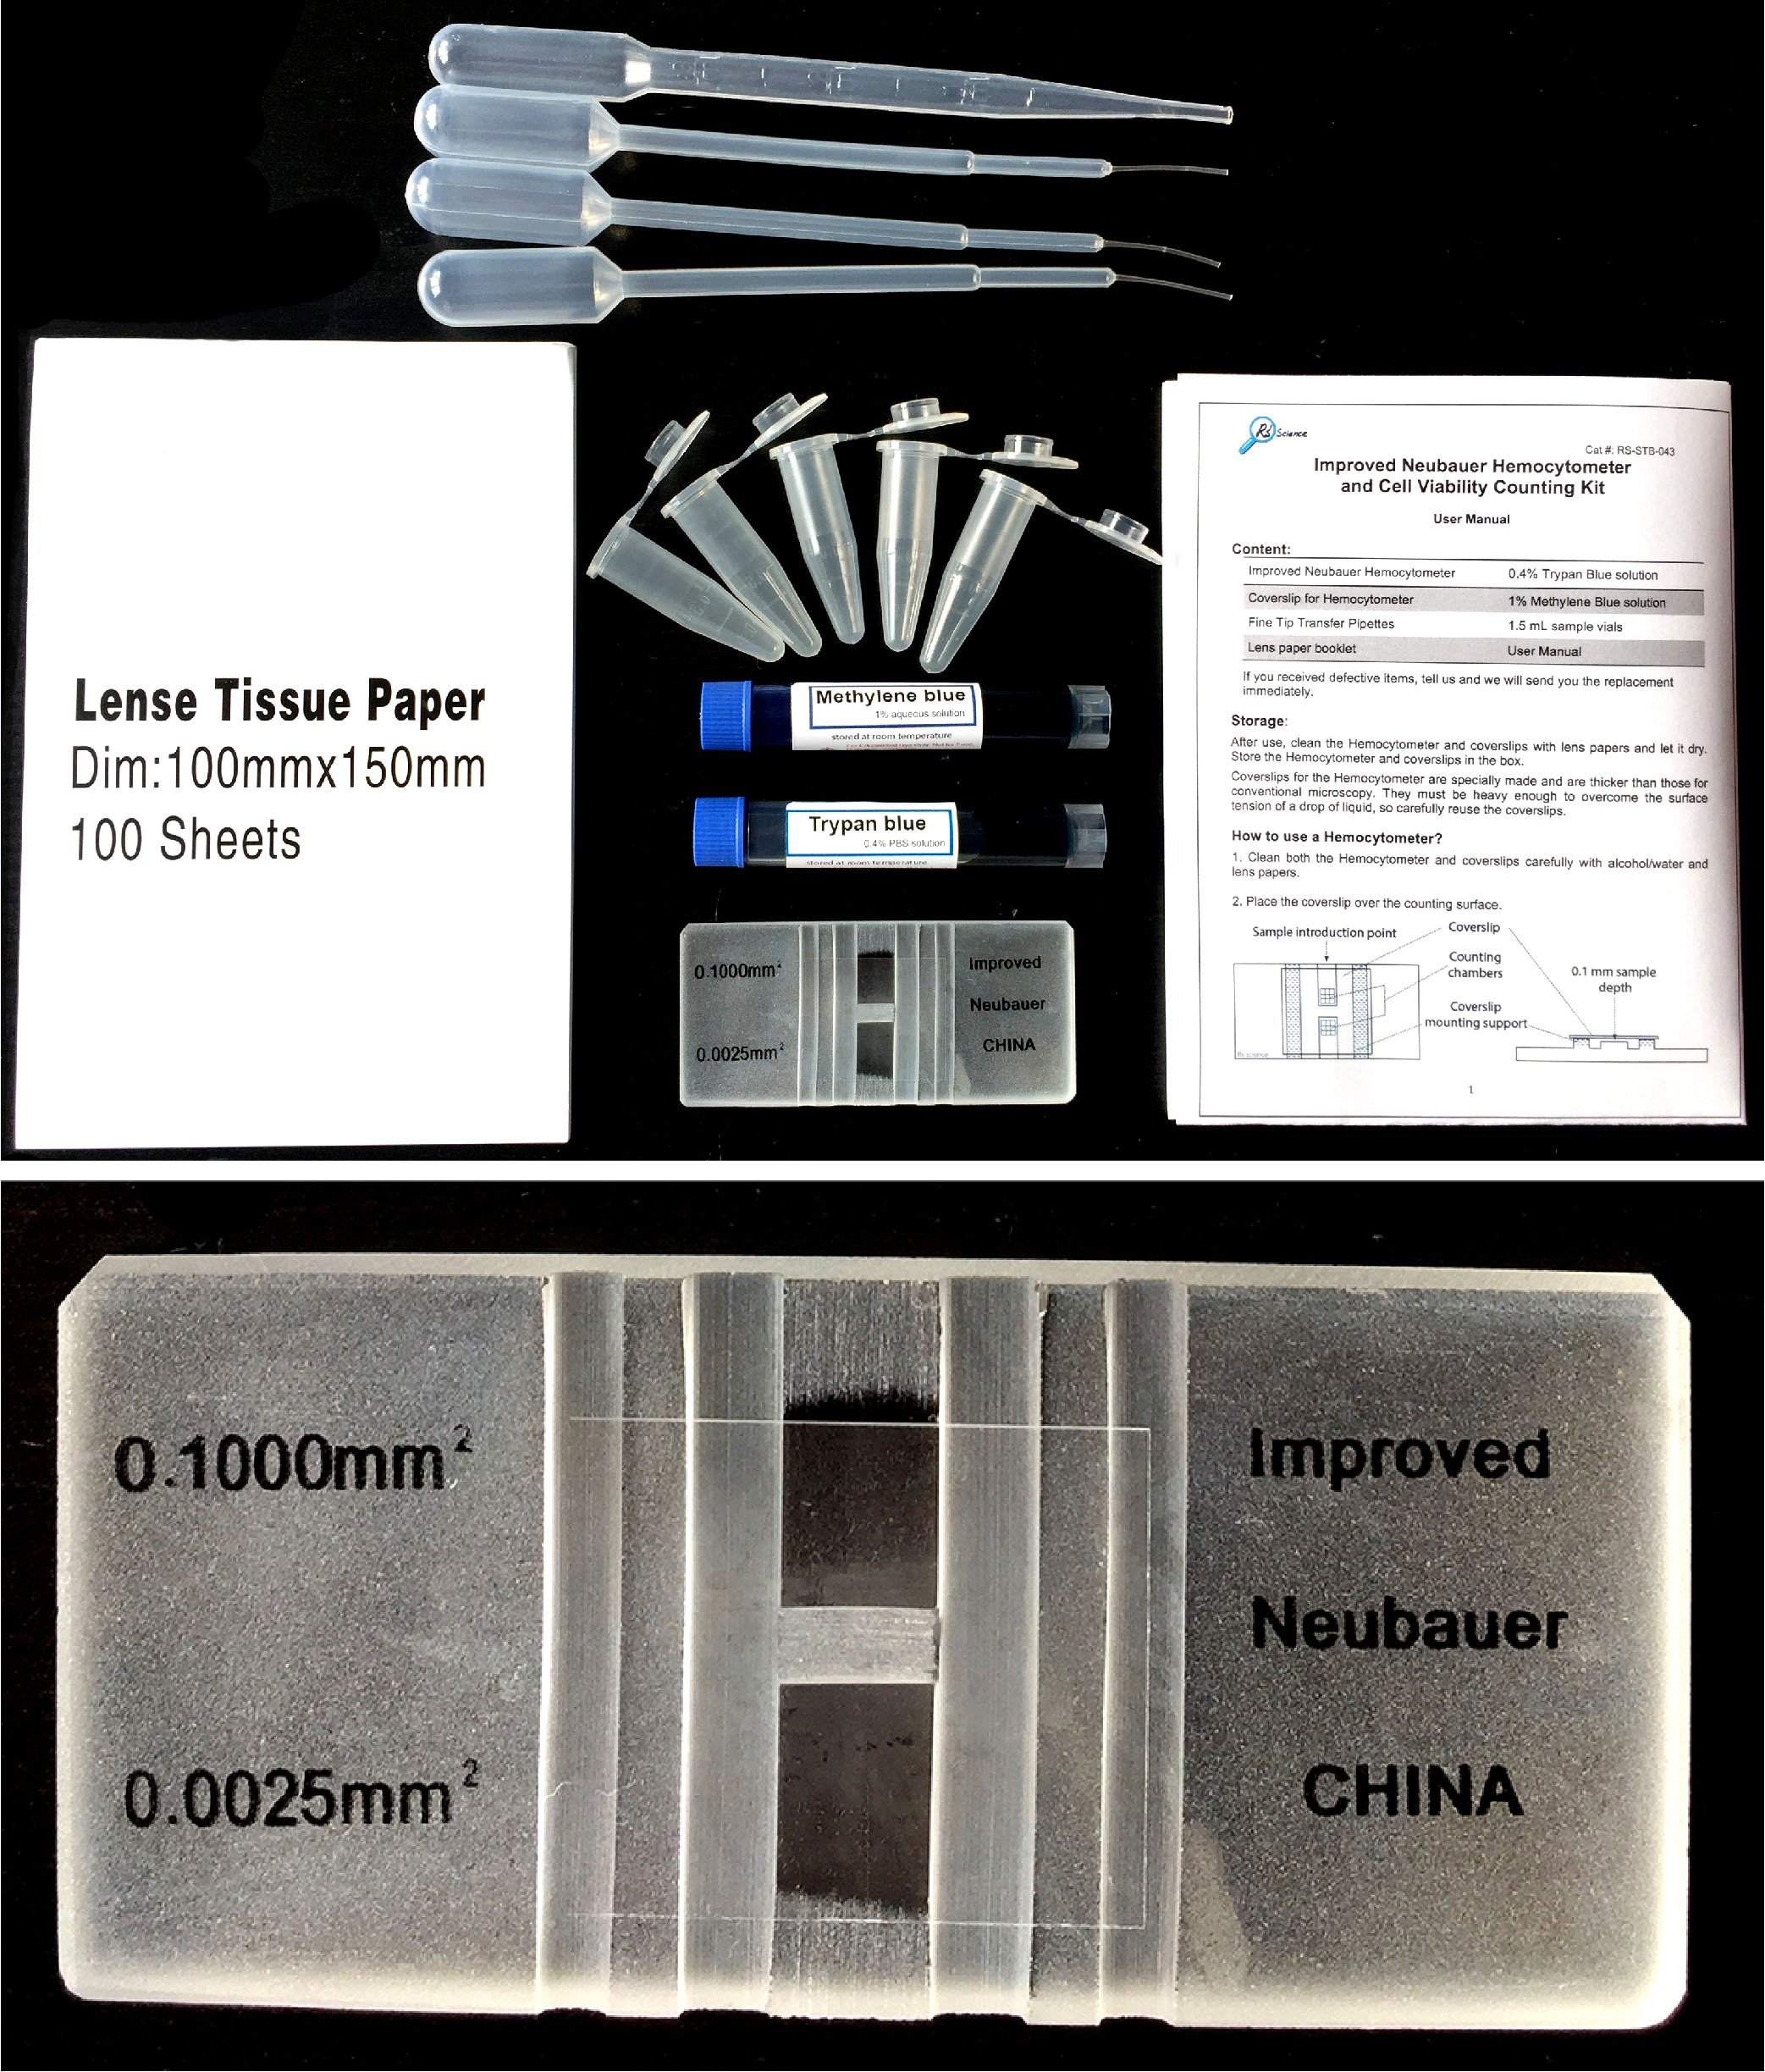 Rs' Science - Improved Neubauer Hemocytometer kit with Trypan blue and Methylene blue for blood, cell, yeast counting